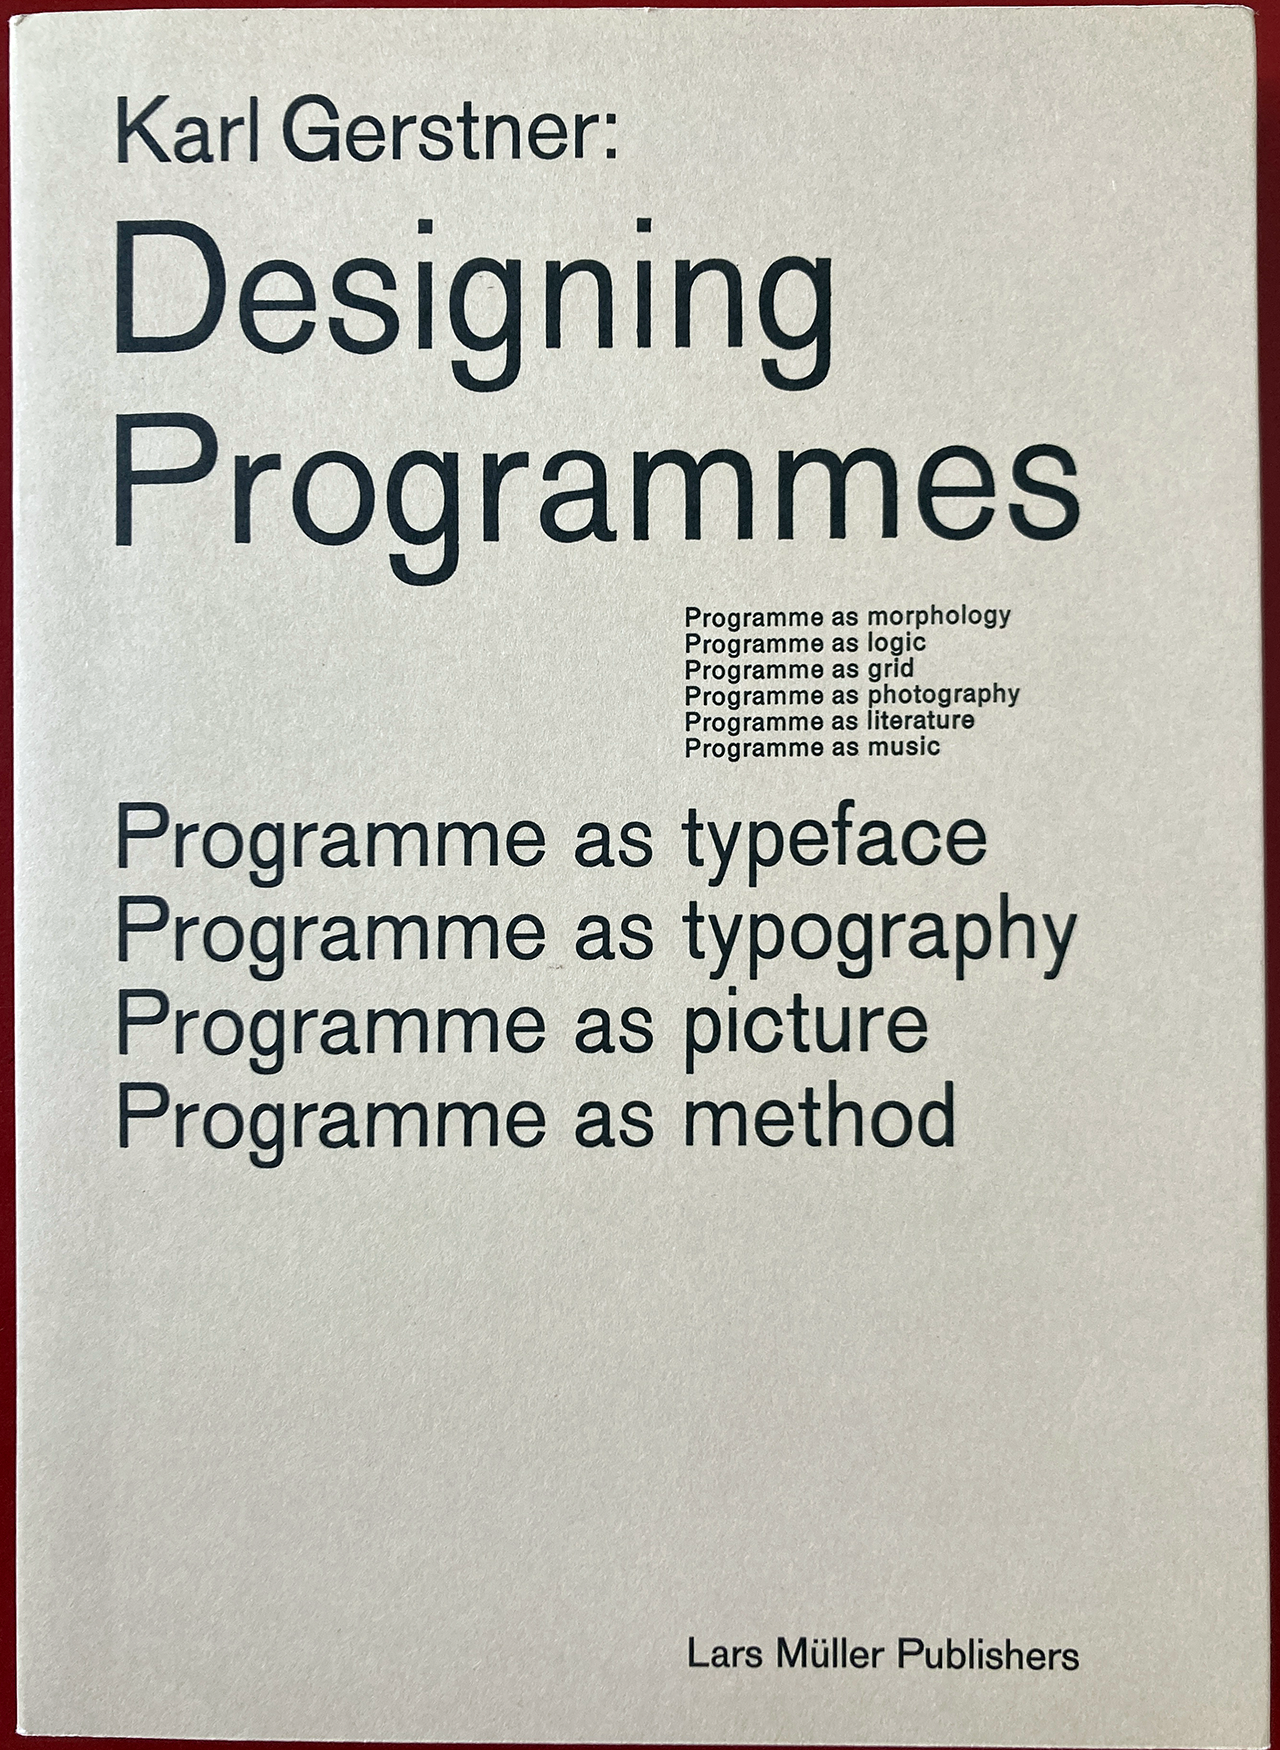 designing Programmers. Programme as morphology. Programme as logic. Programme as grid. Programme as photography. Programme as literature. Programme as music Book Cover